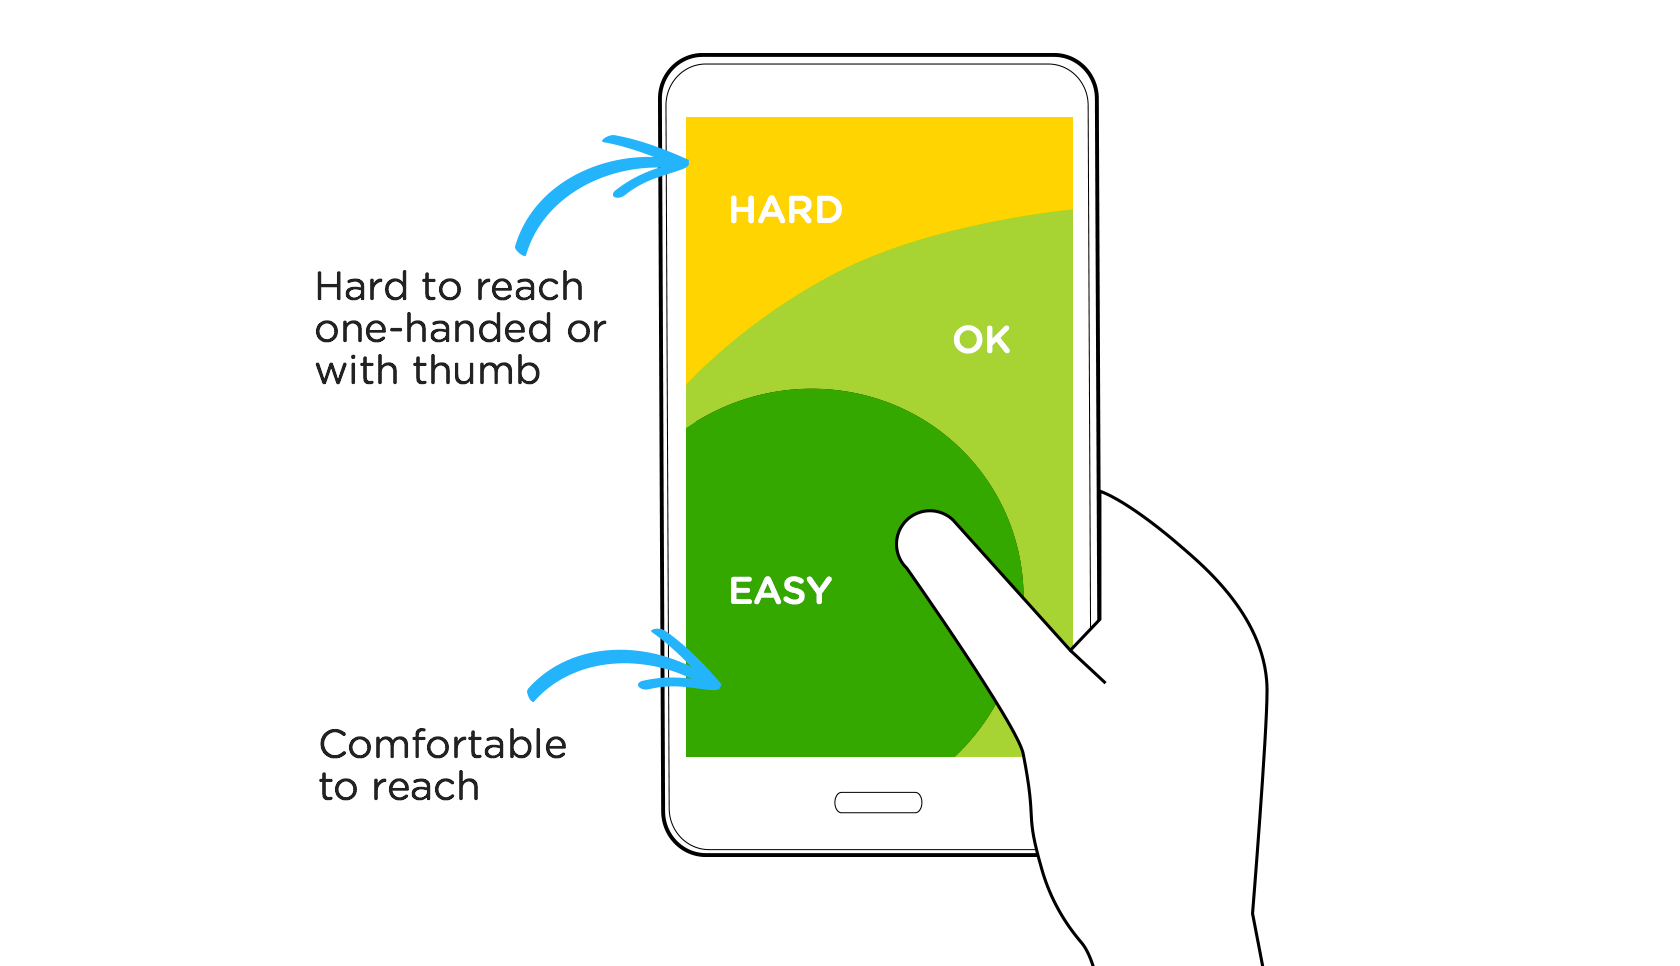 Mobile UX design: Take the thumb zone into account